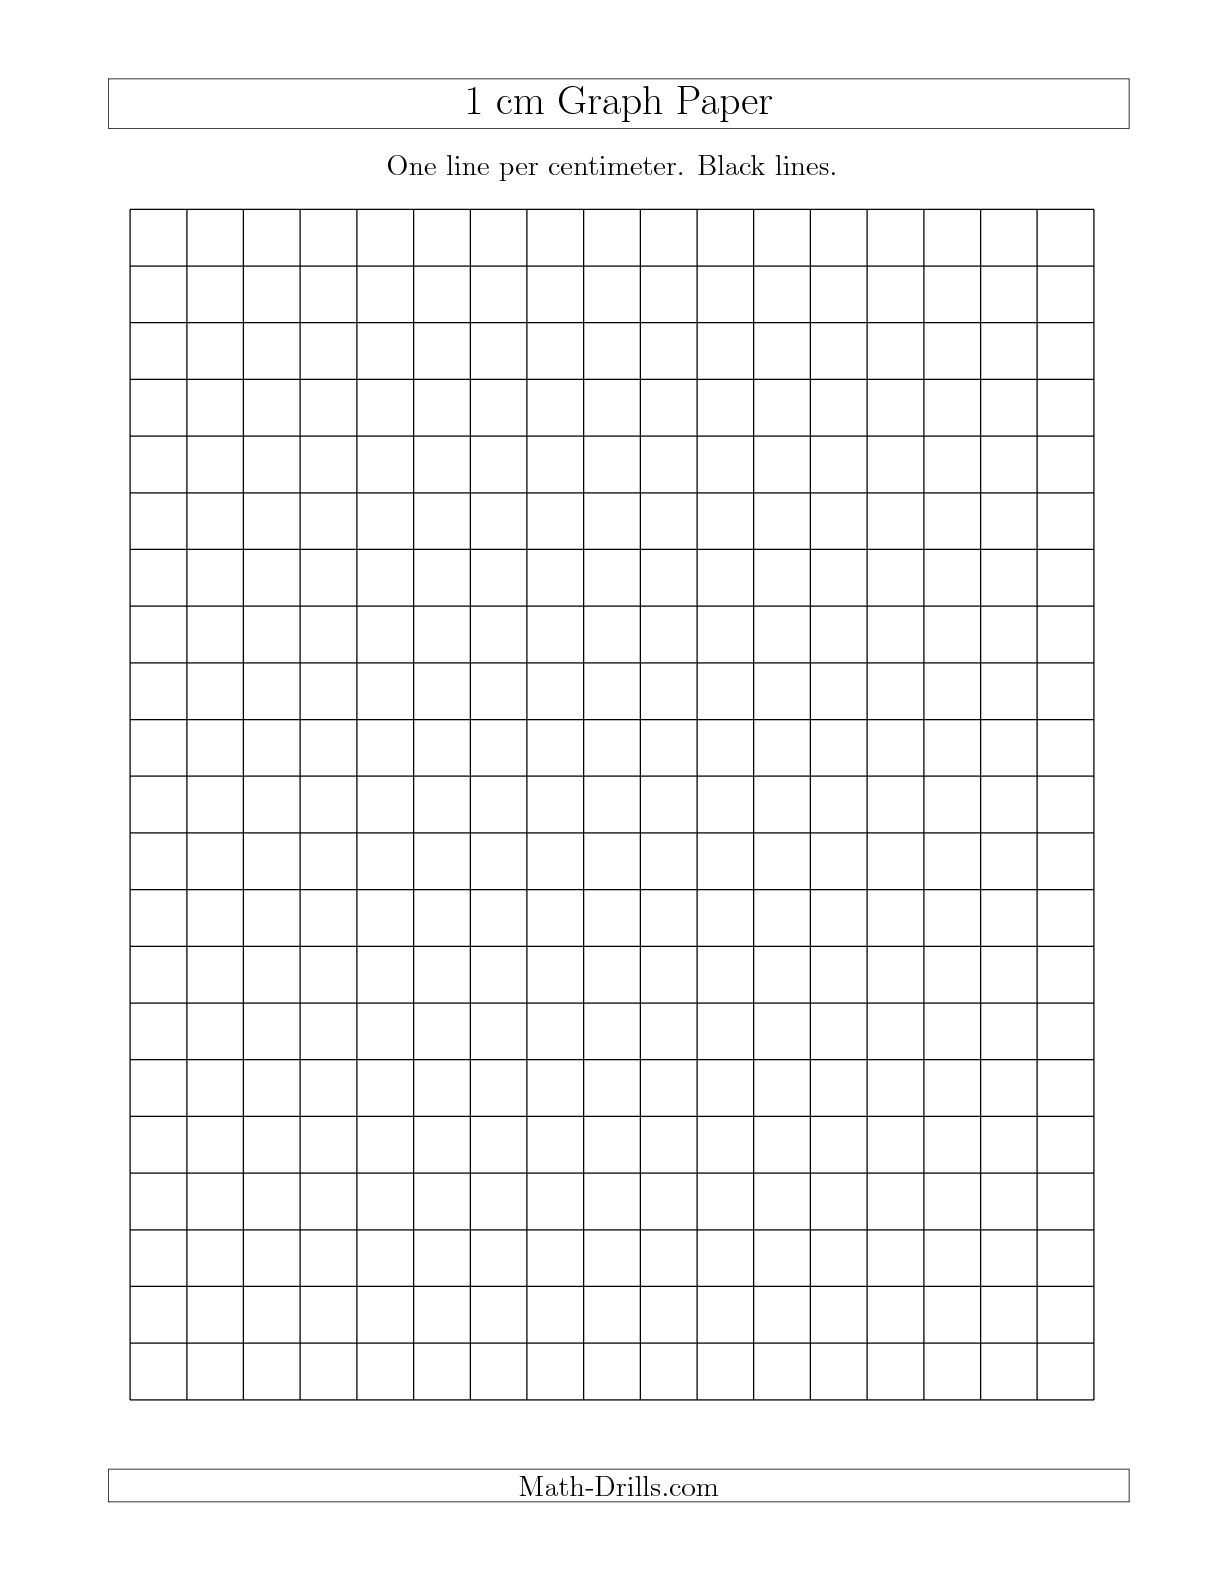 Analyzing Graphs Worksheet as Well as the 1 Cm Graph Paper with Black Lines A Math Worksheet From the